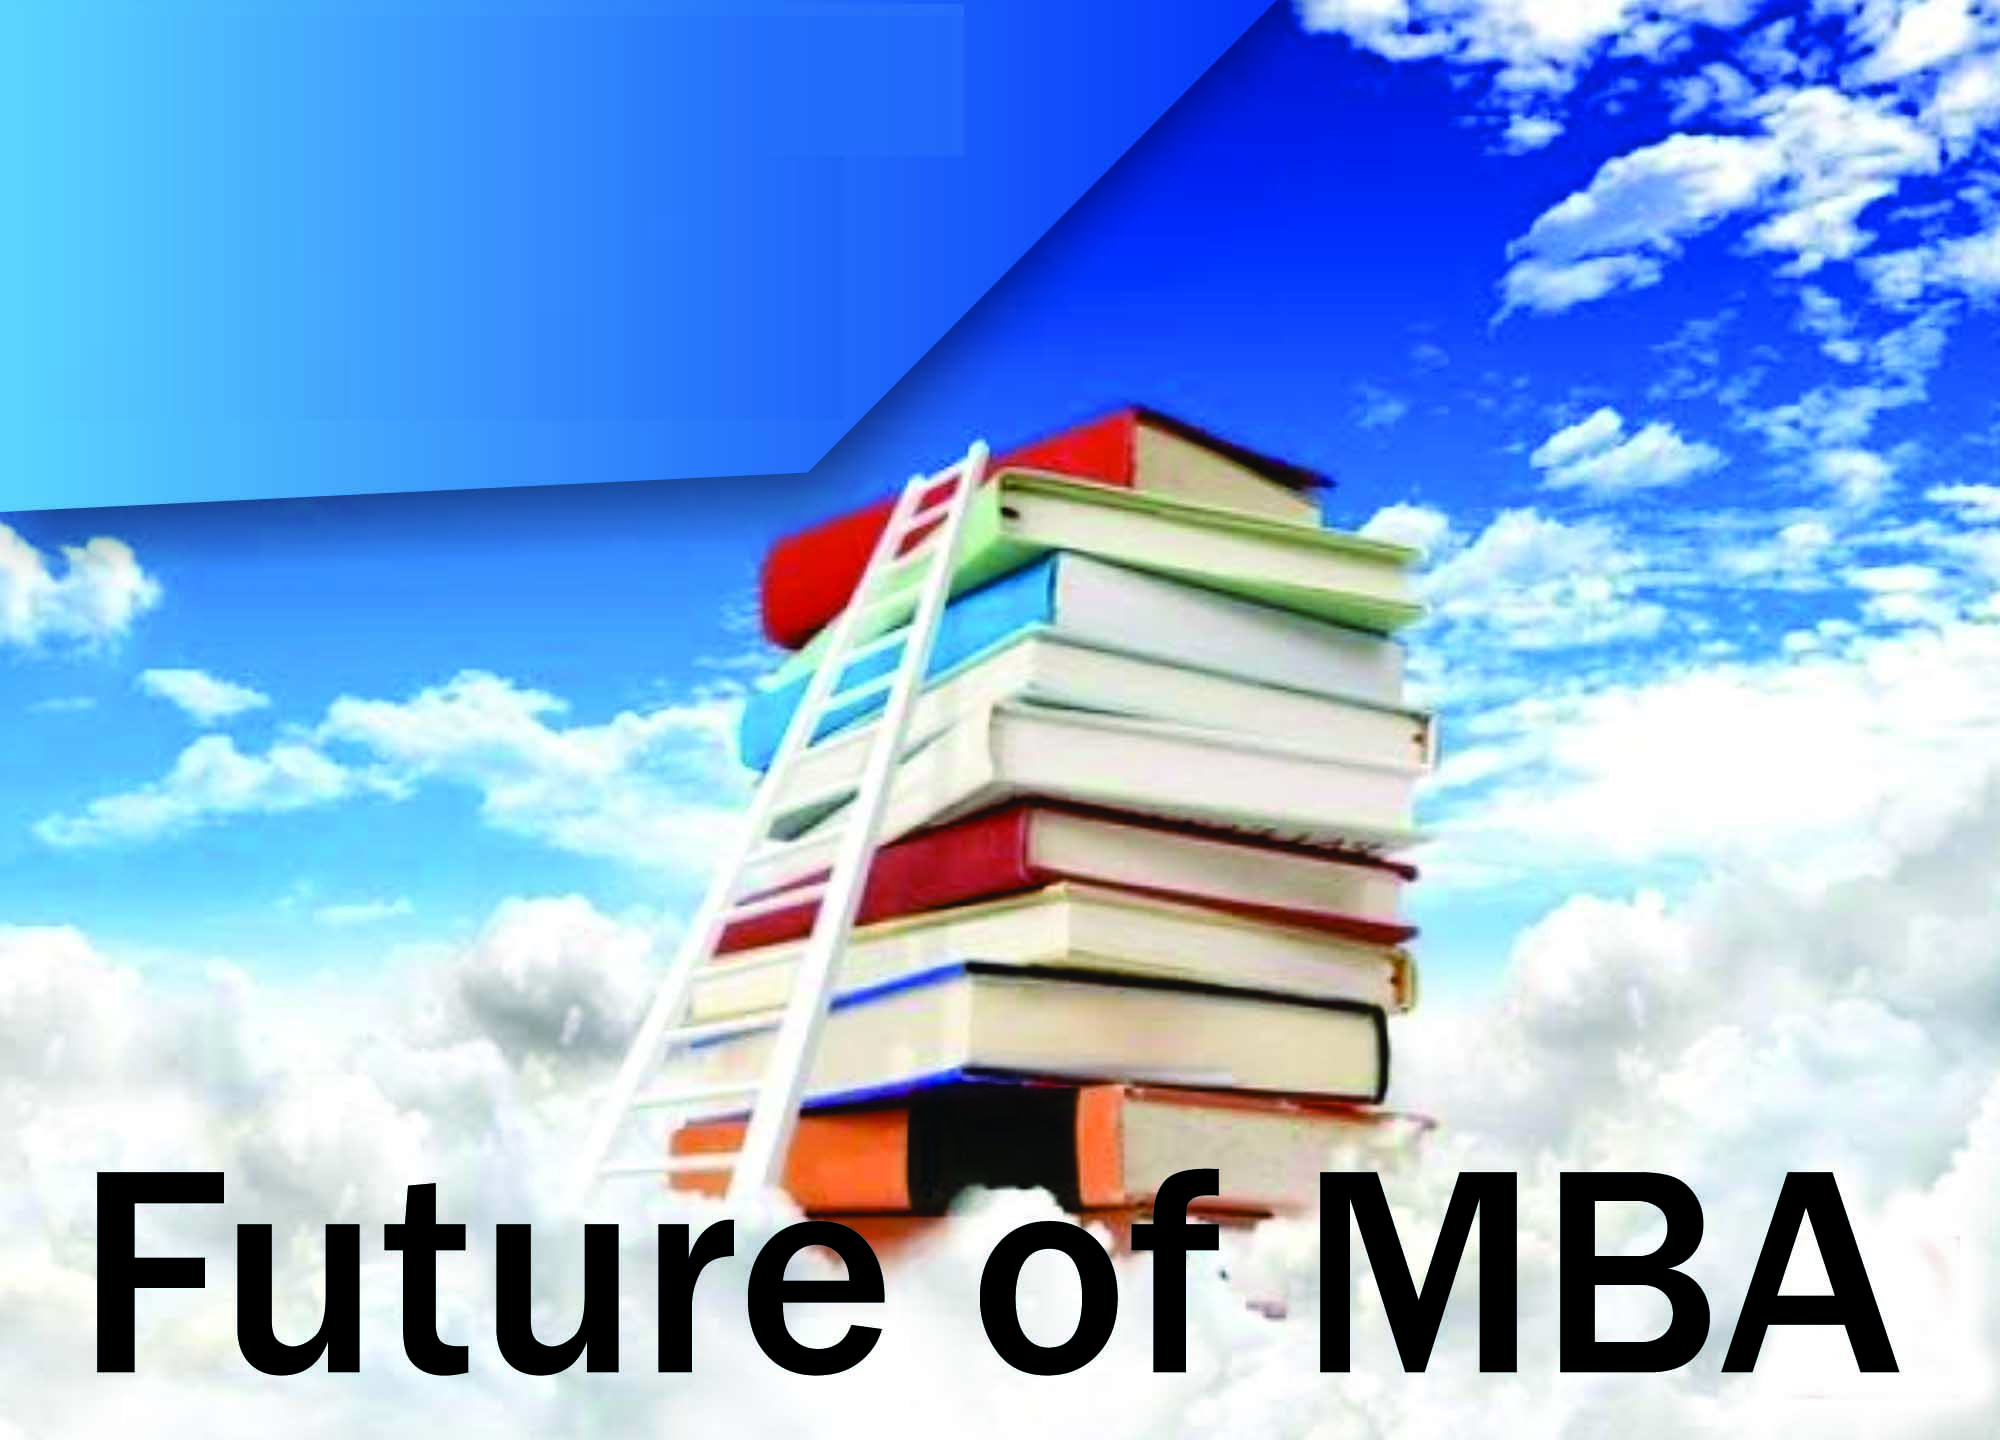 future-of-mba